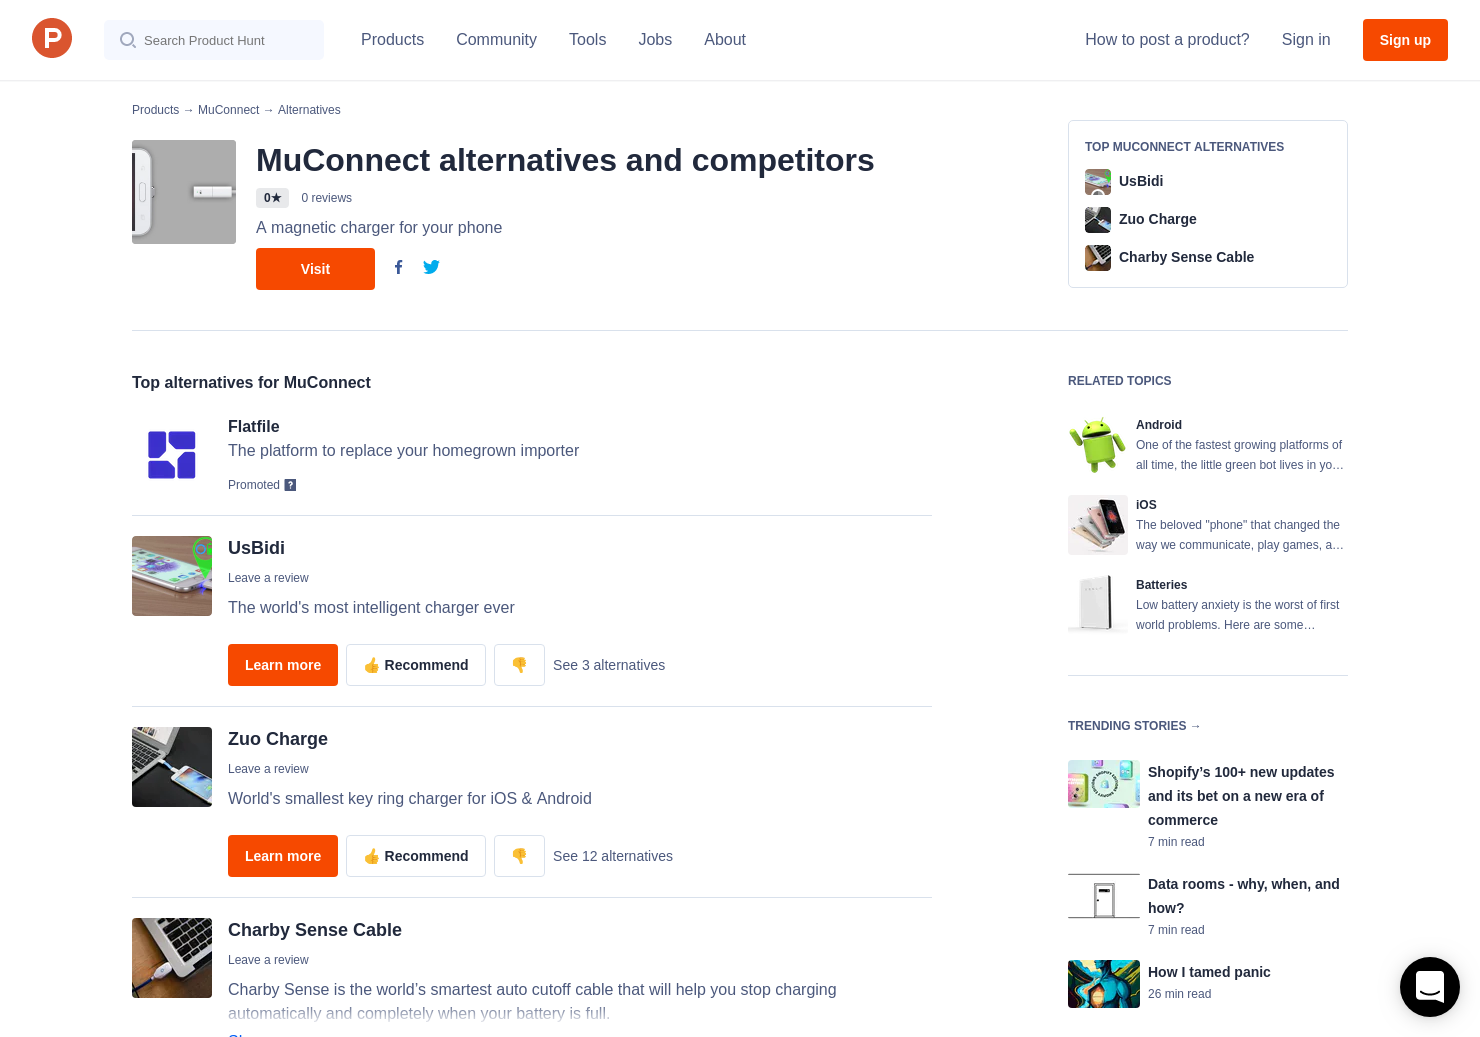 3 alternatives to muconnect product hunt